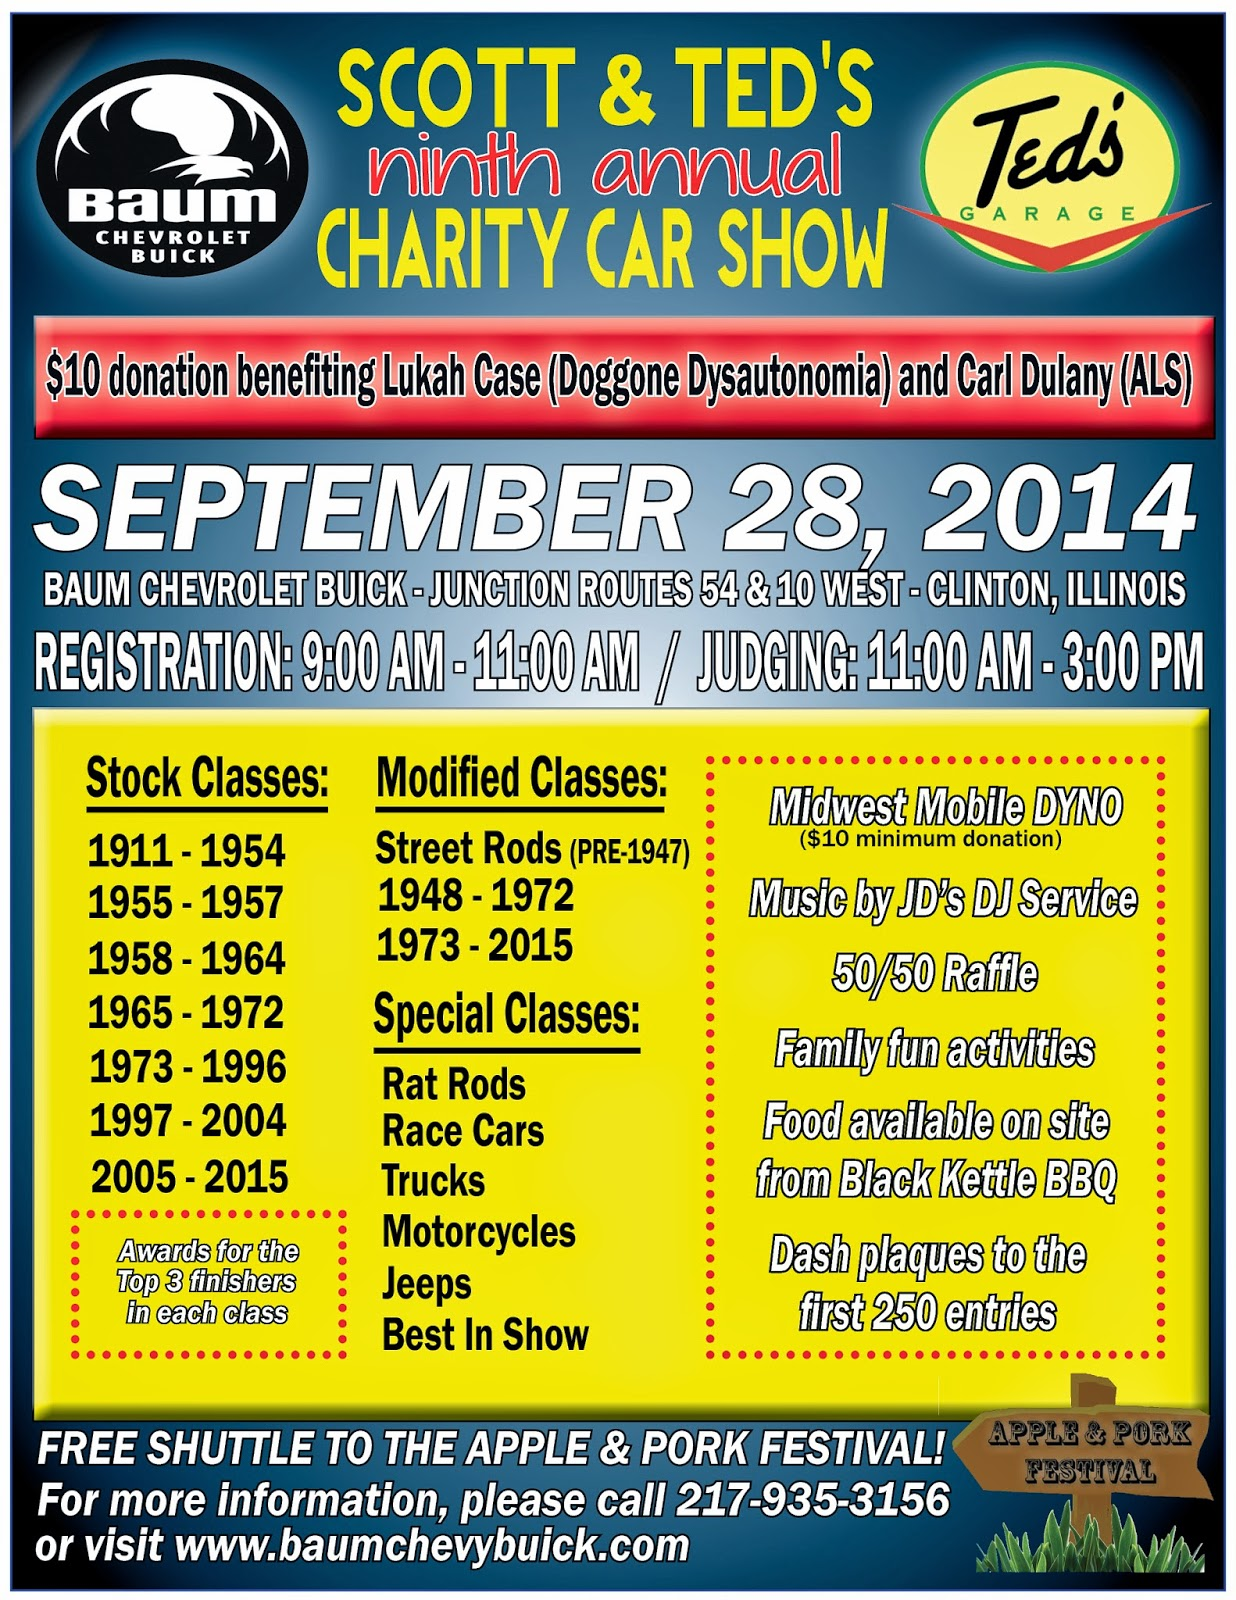 Baum Chevrolet Buick Scott Teds Th Annual Charity Car Show Info - Baum chevrolet clinton il car show